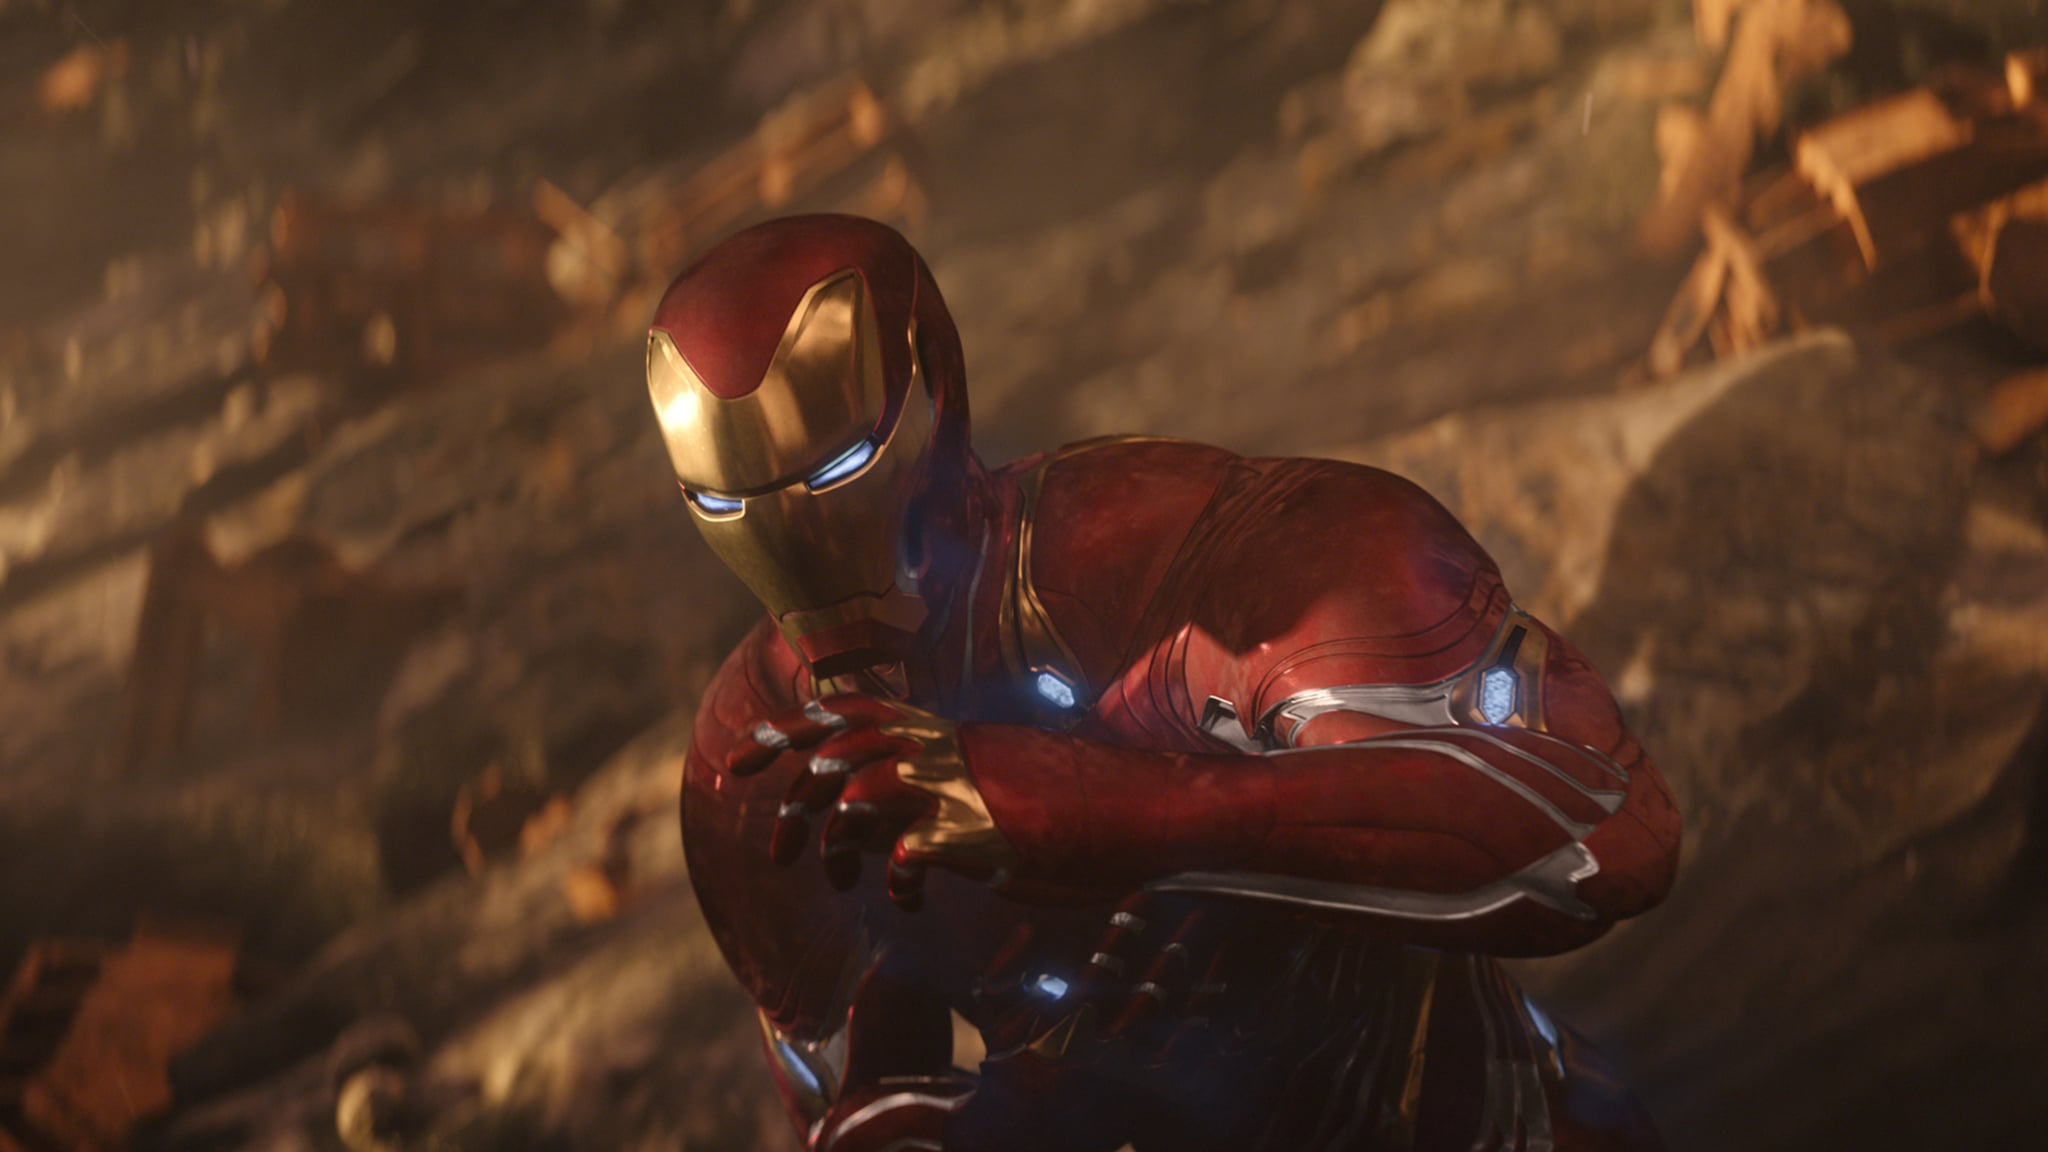 Will Iron Man Be in Avengers 4? | POPSUGAR Entertainment